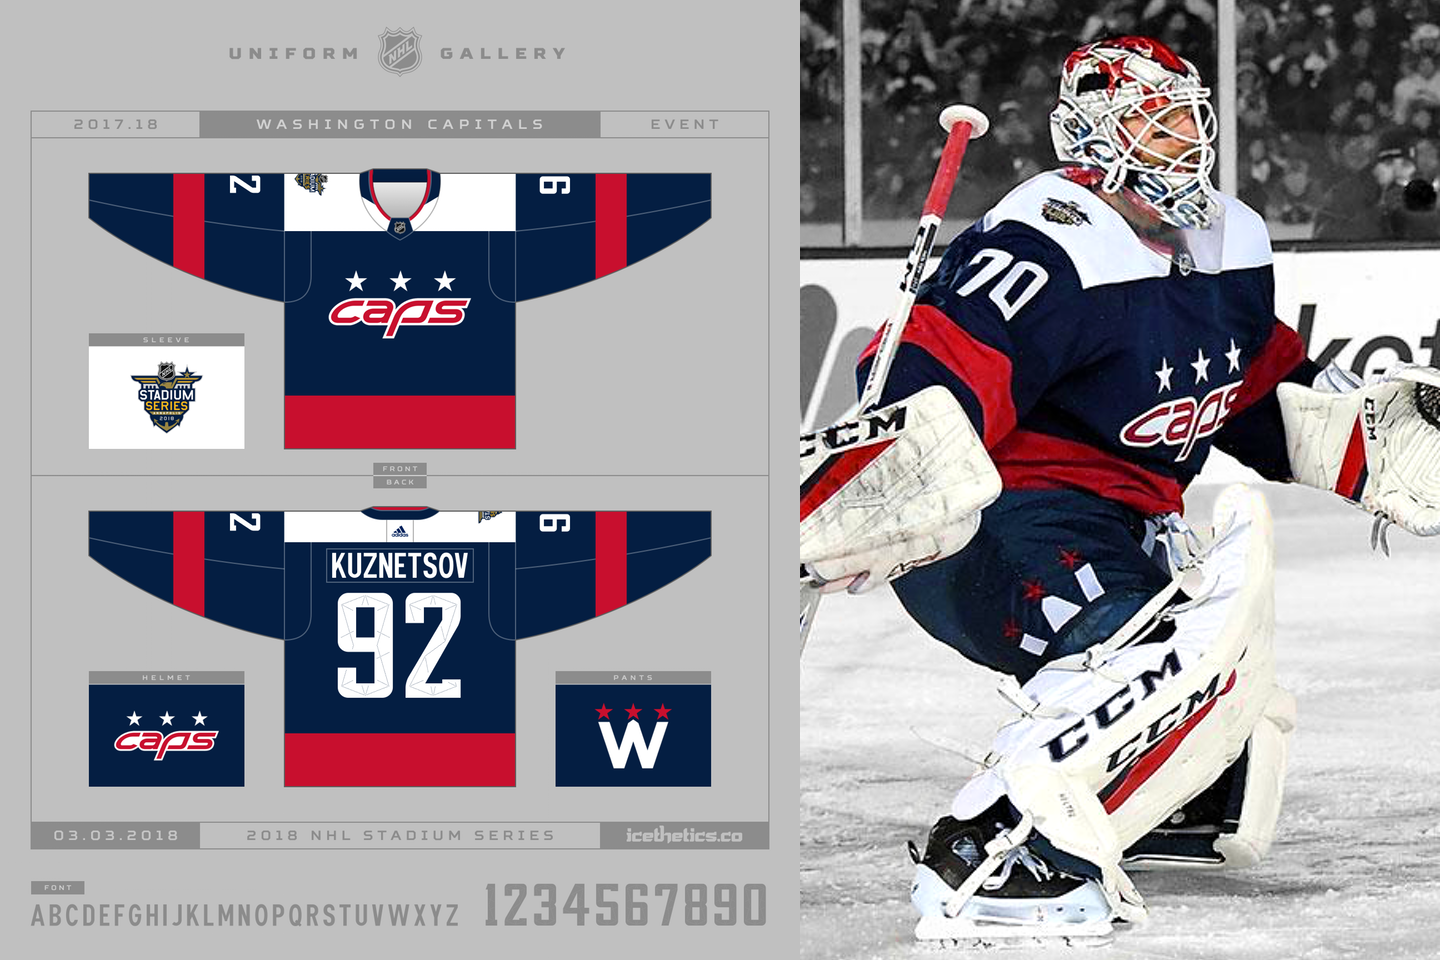 quality design 71a5b 76319 The 7: Special event jerseys in the 2017-18 NHL season ...